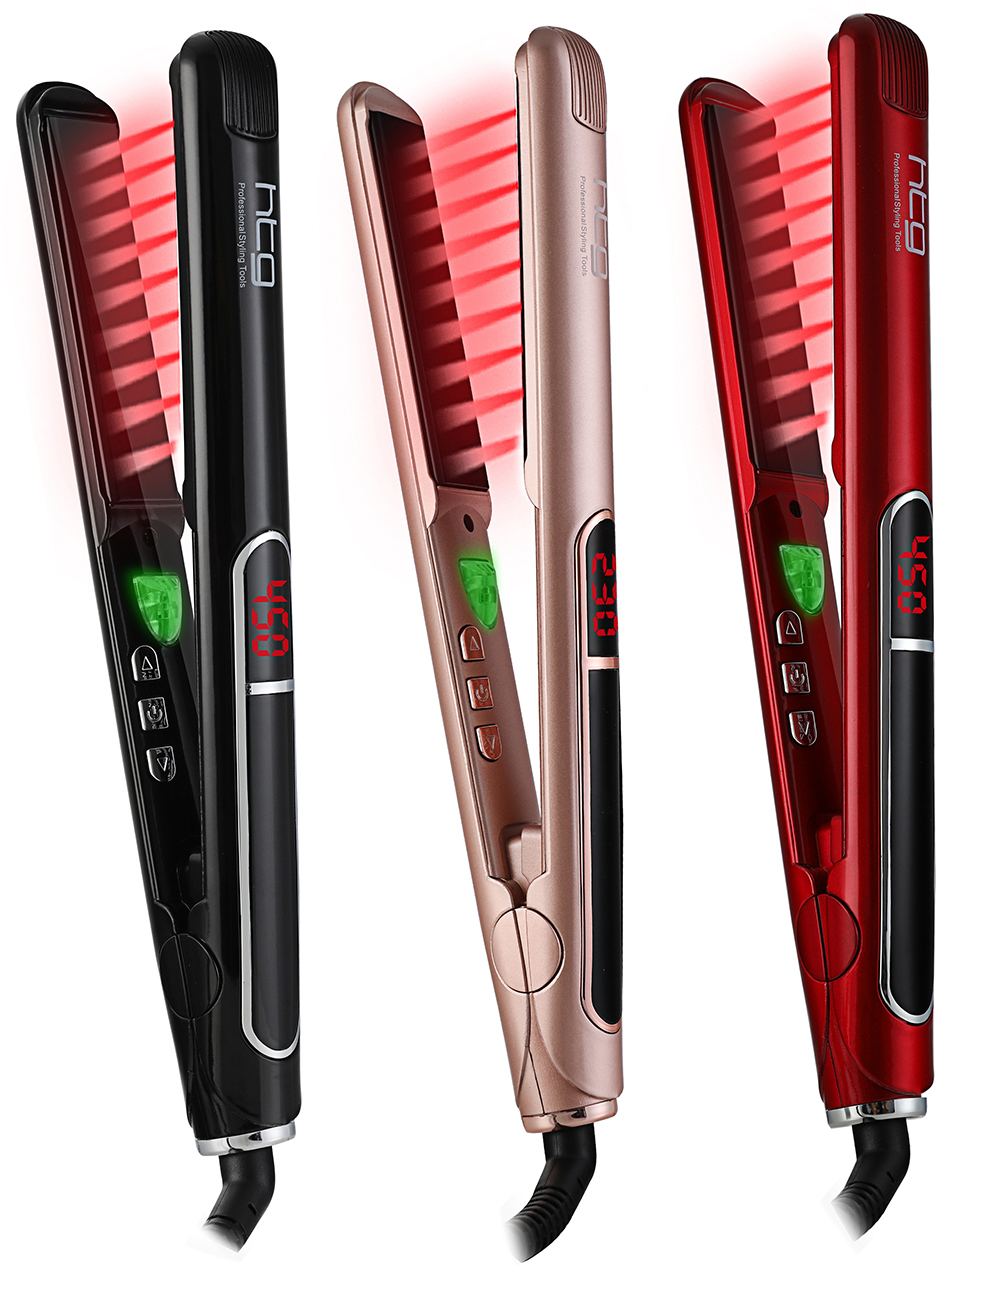 HTG Professional Hair Straightener with lONIC Infrared Hair Straightener Straightening iron LCD Display Hair Flat Iron